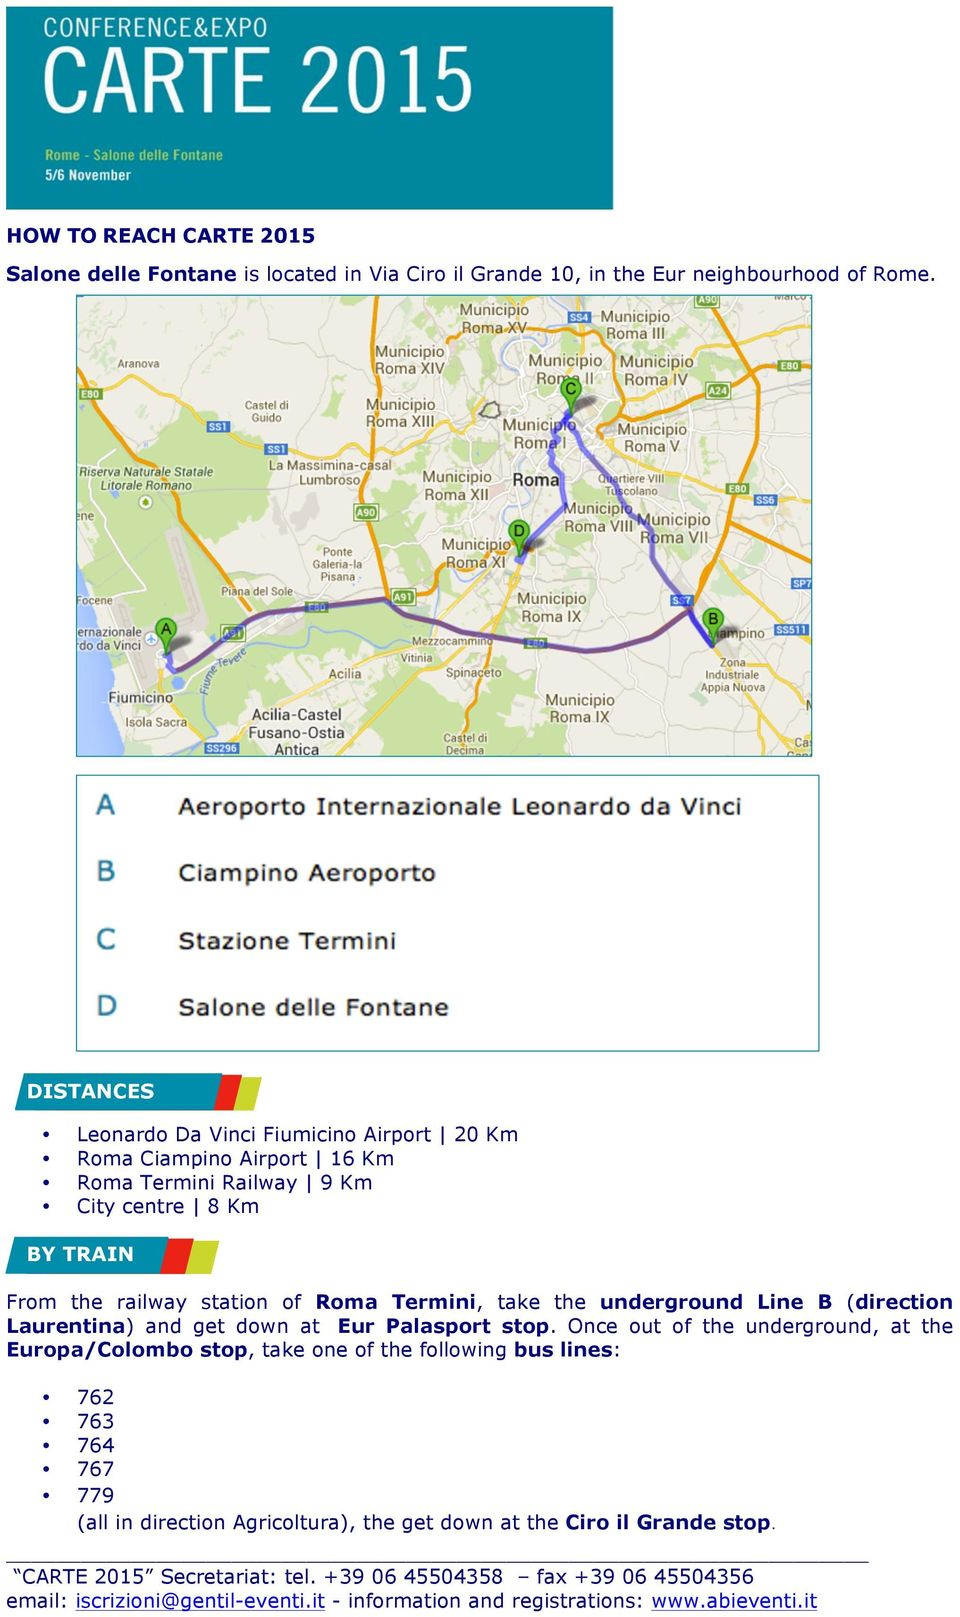 railway station of Roma Termini, take the underground Line B (direction Laurentina) and get down at Eur Palasport stop.